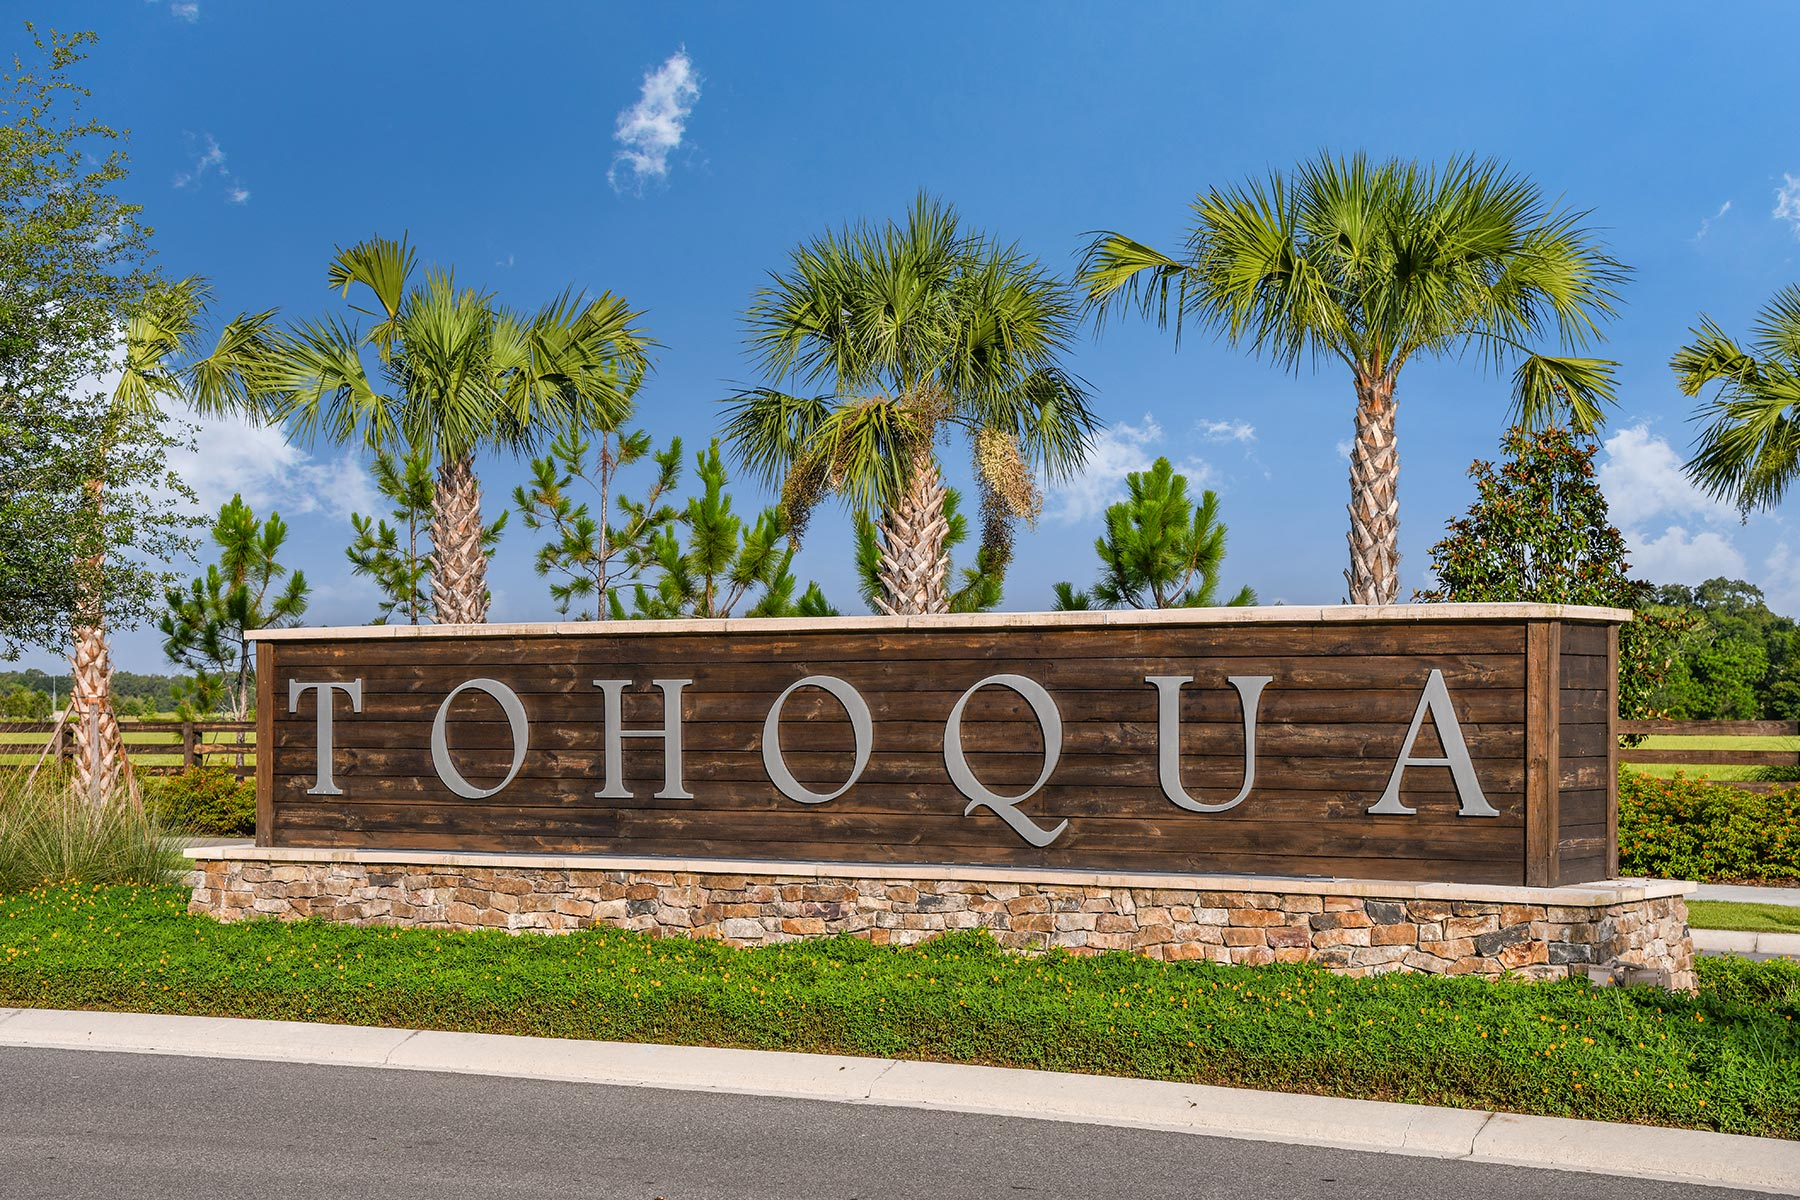 Tohoqua Monument in Kissimmee Florida by Mattamy Homes